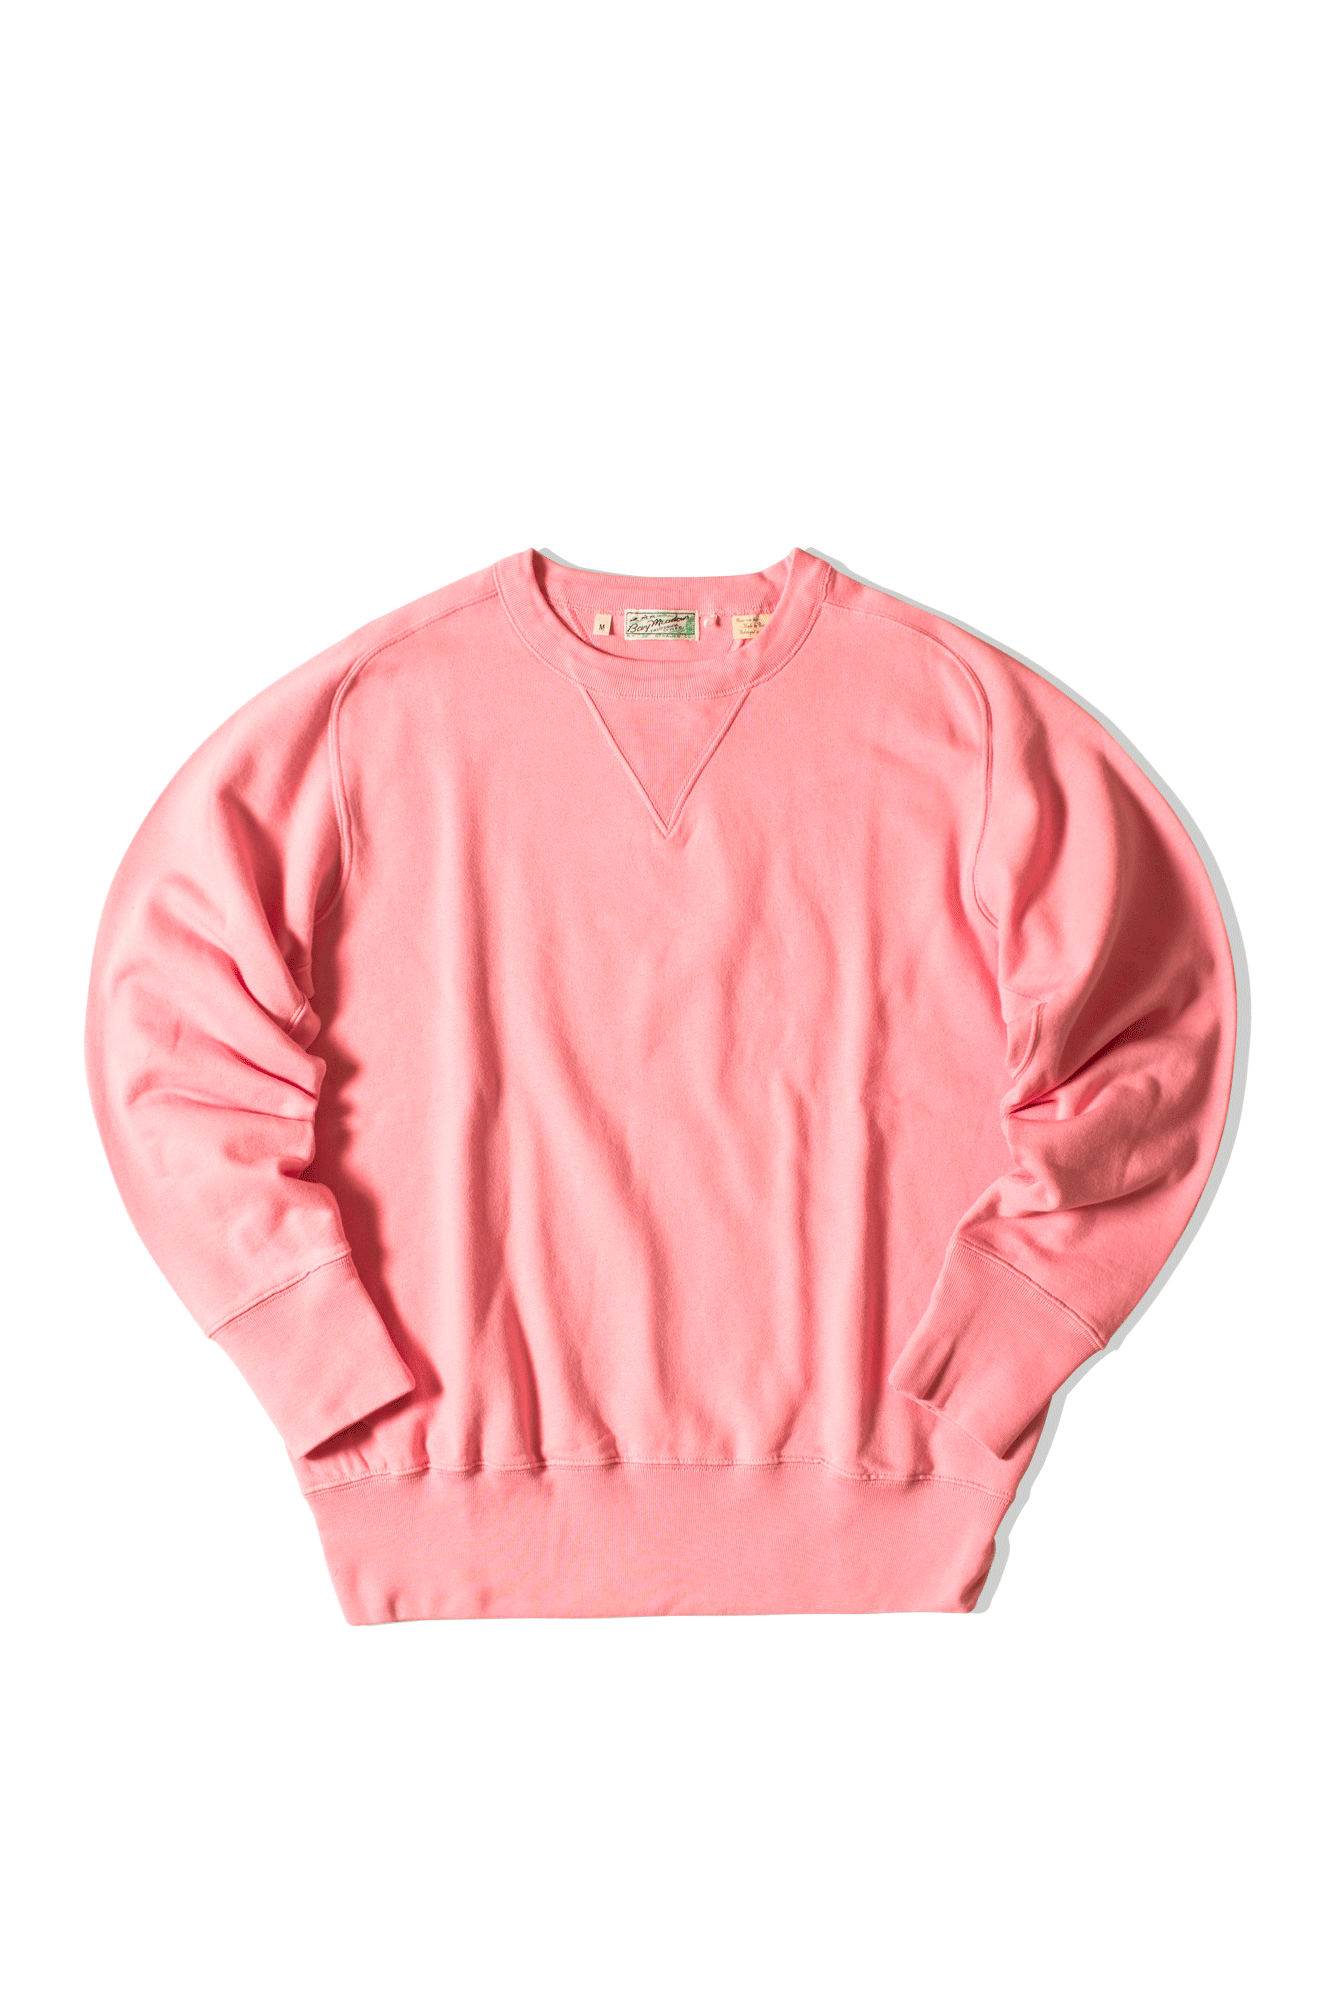 Levi's Felpe Bay Meadows Sweatshirt LVC Rosa 2193100230#000#0230#M - One Block Down